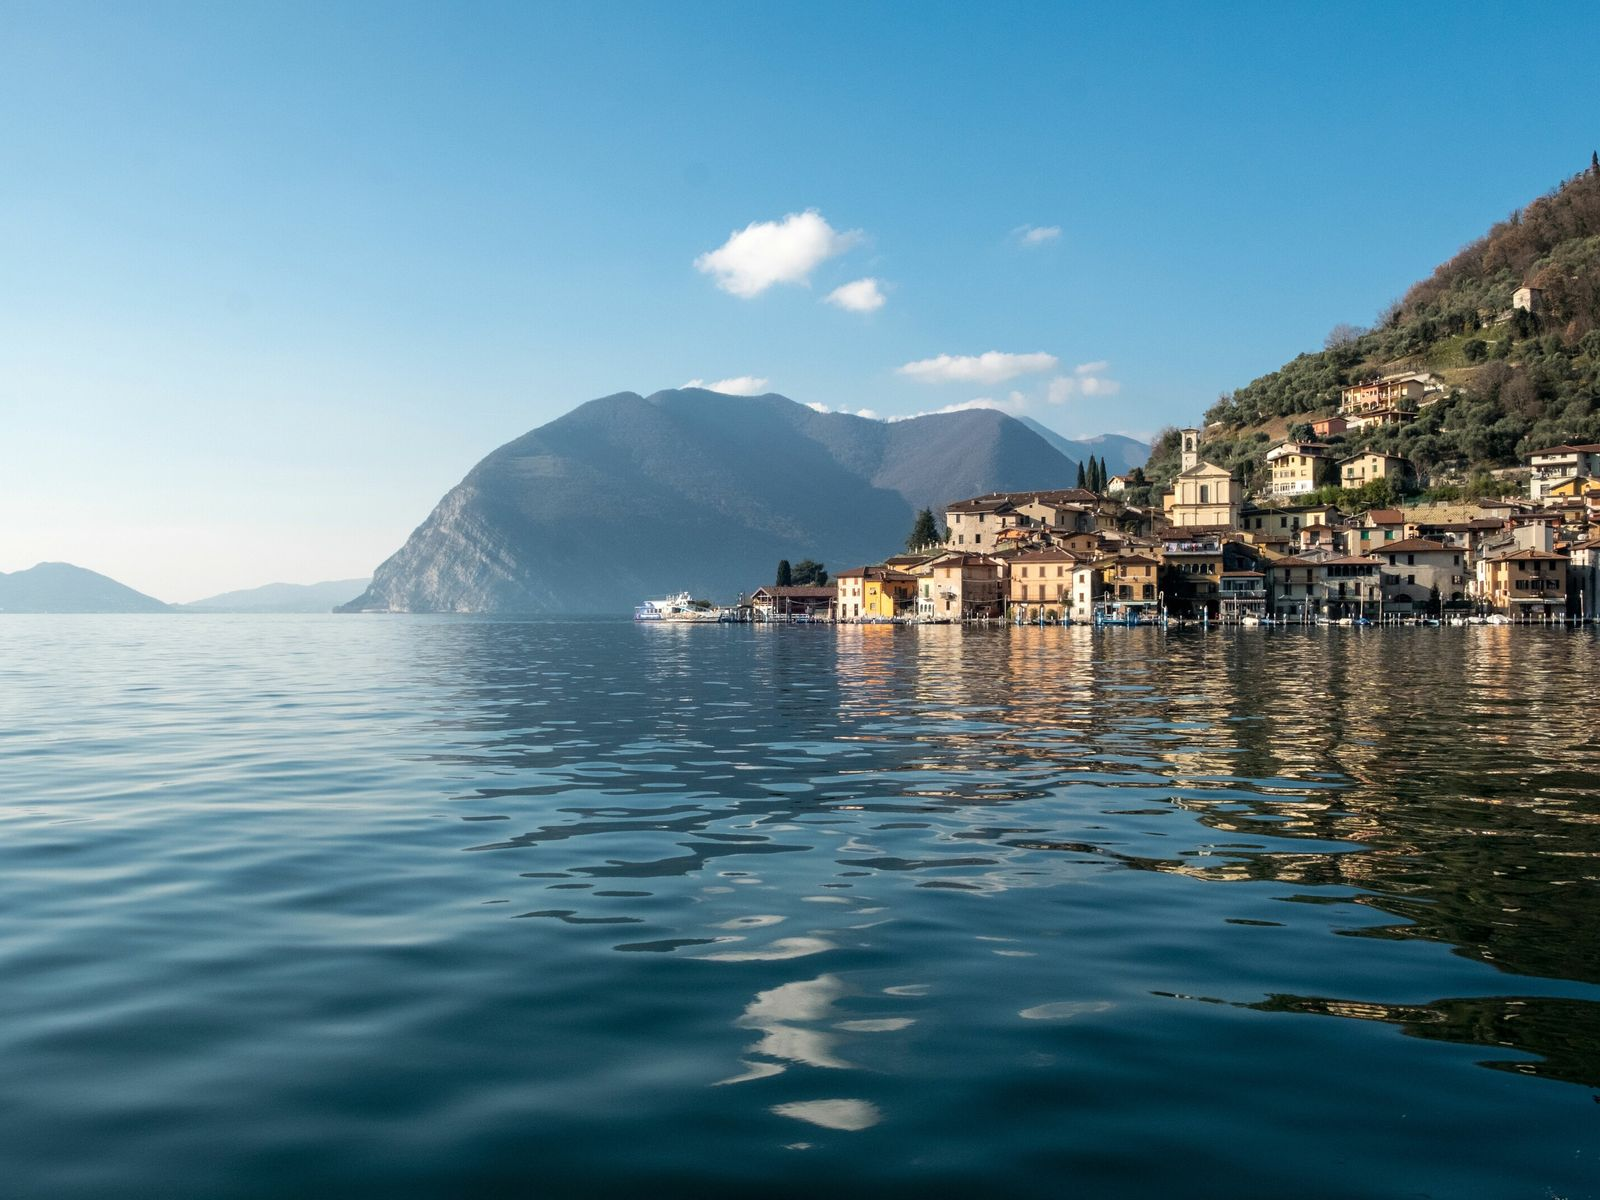 The smallest of Lombardy's four major lakes, Iseo has somehow resisted the limelight focused on such ...